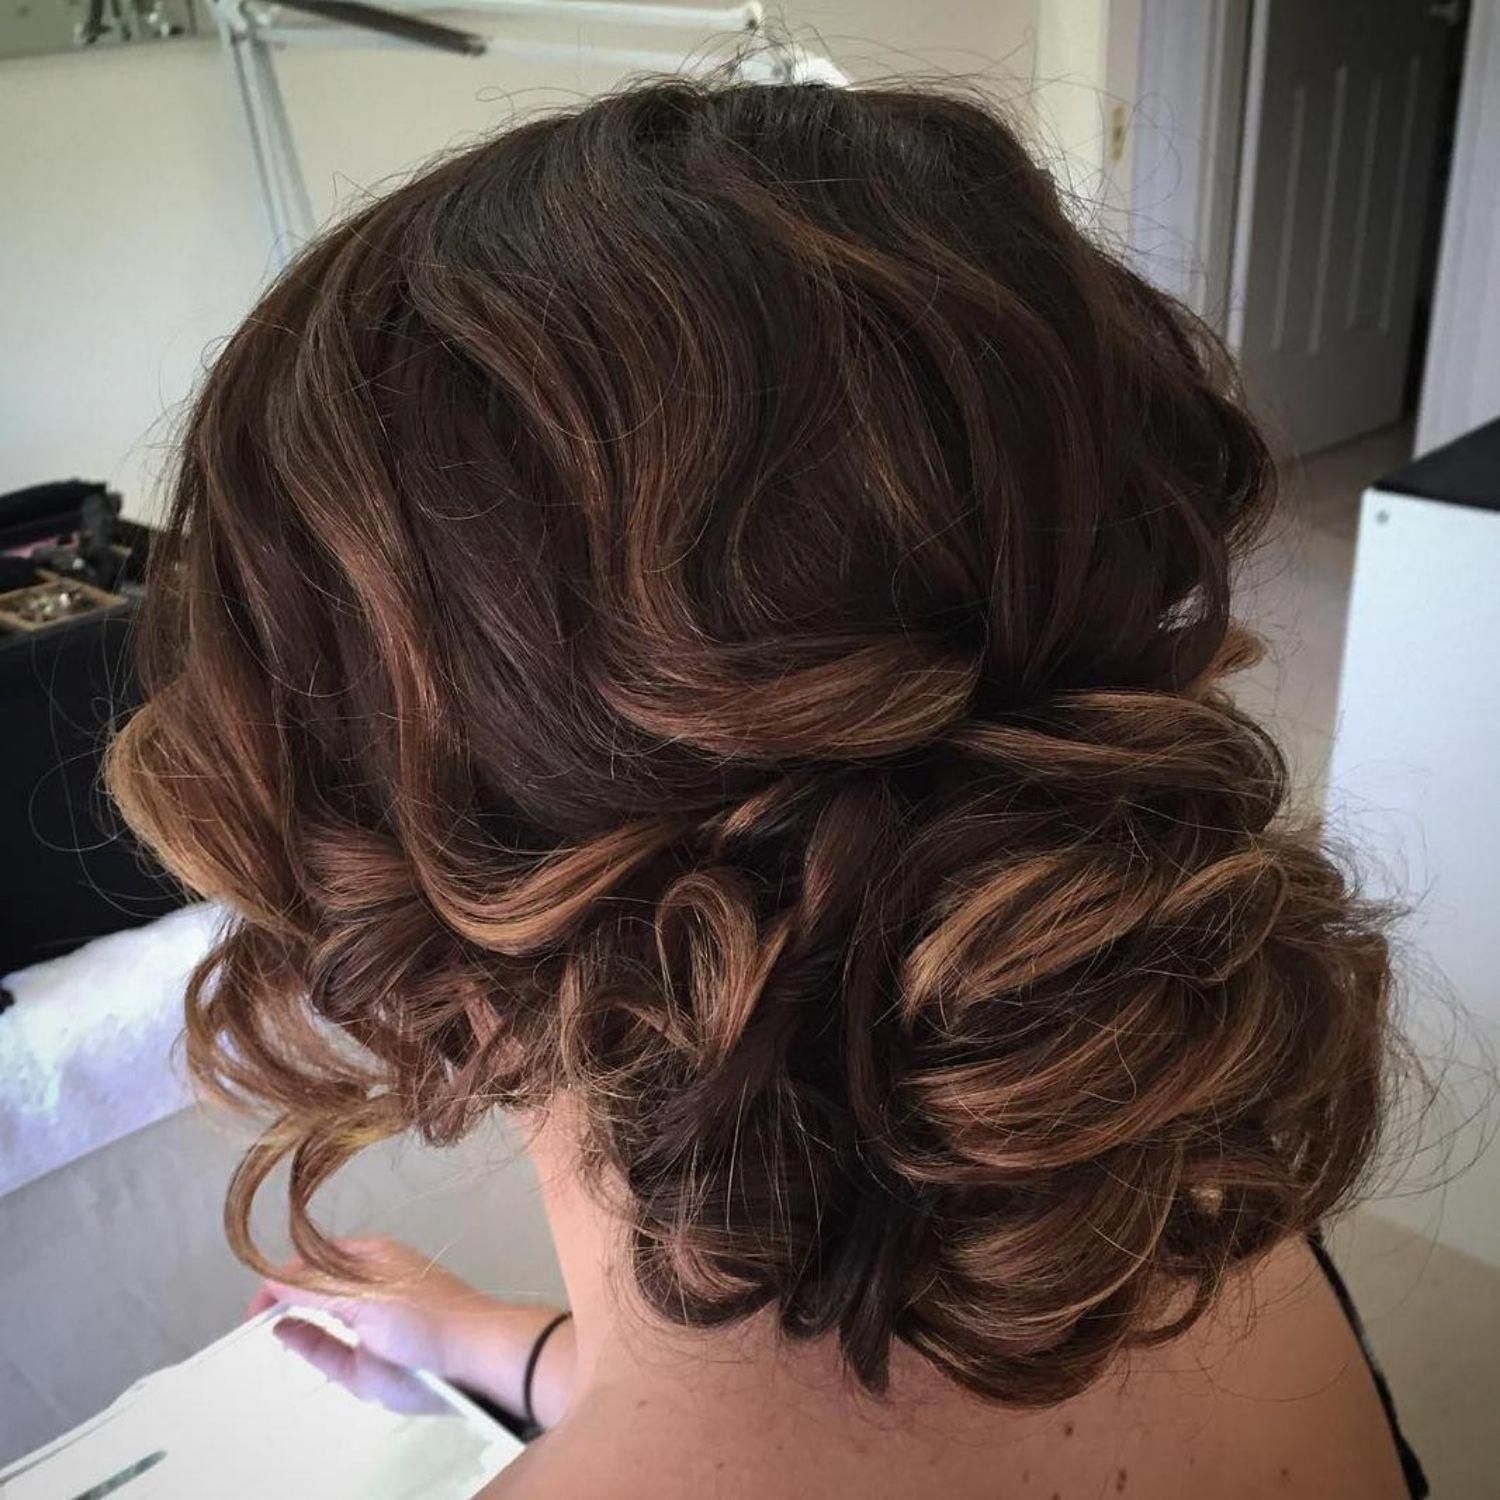 large low curly bun updo #ombrehairupdos | ombre hair updos